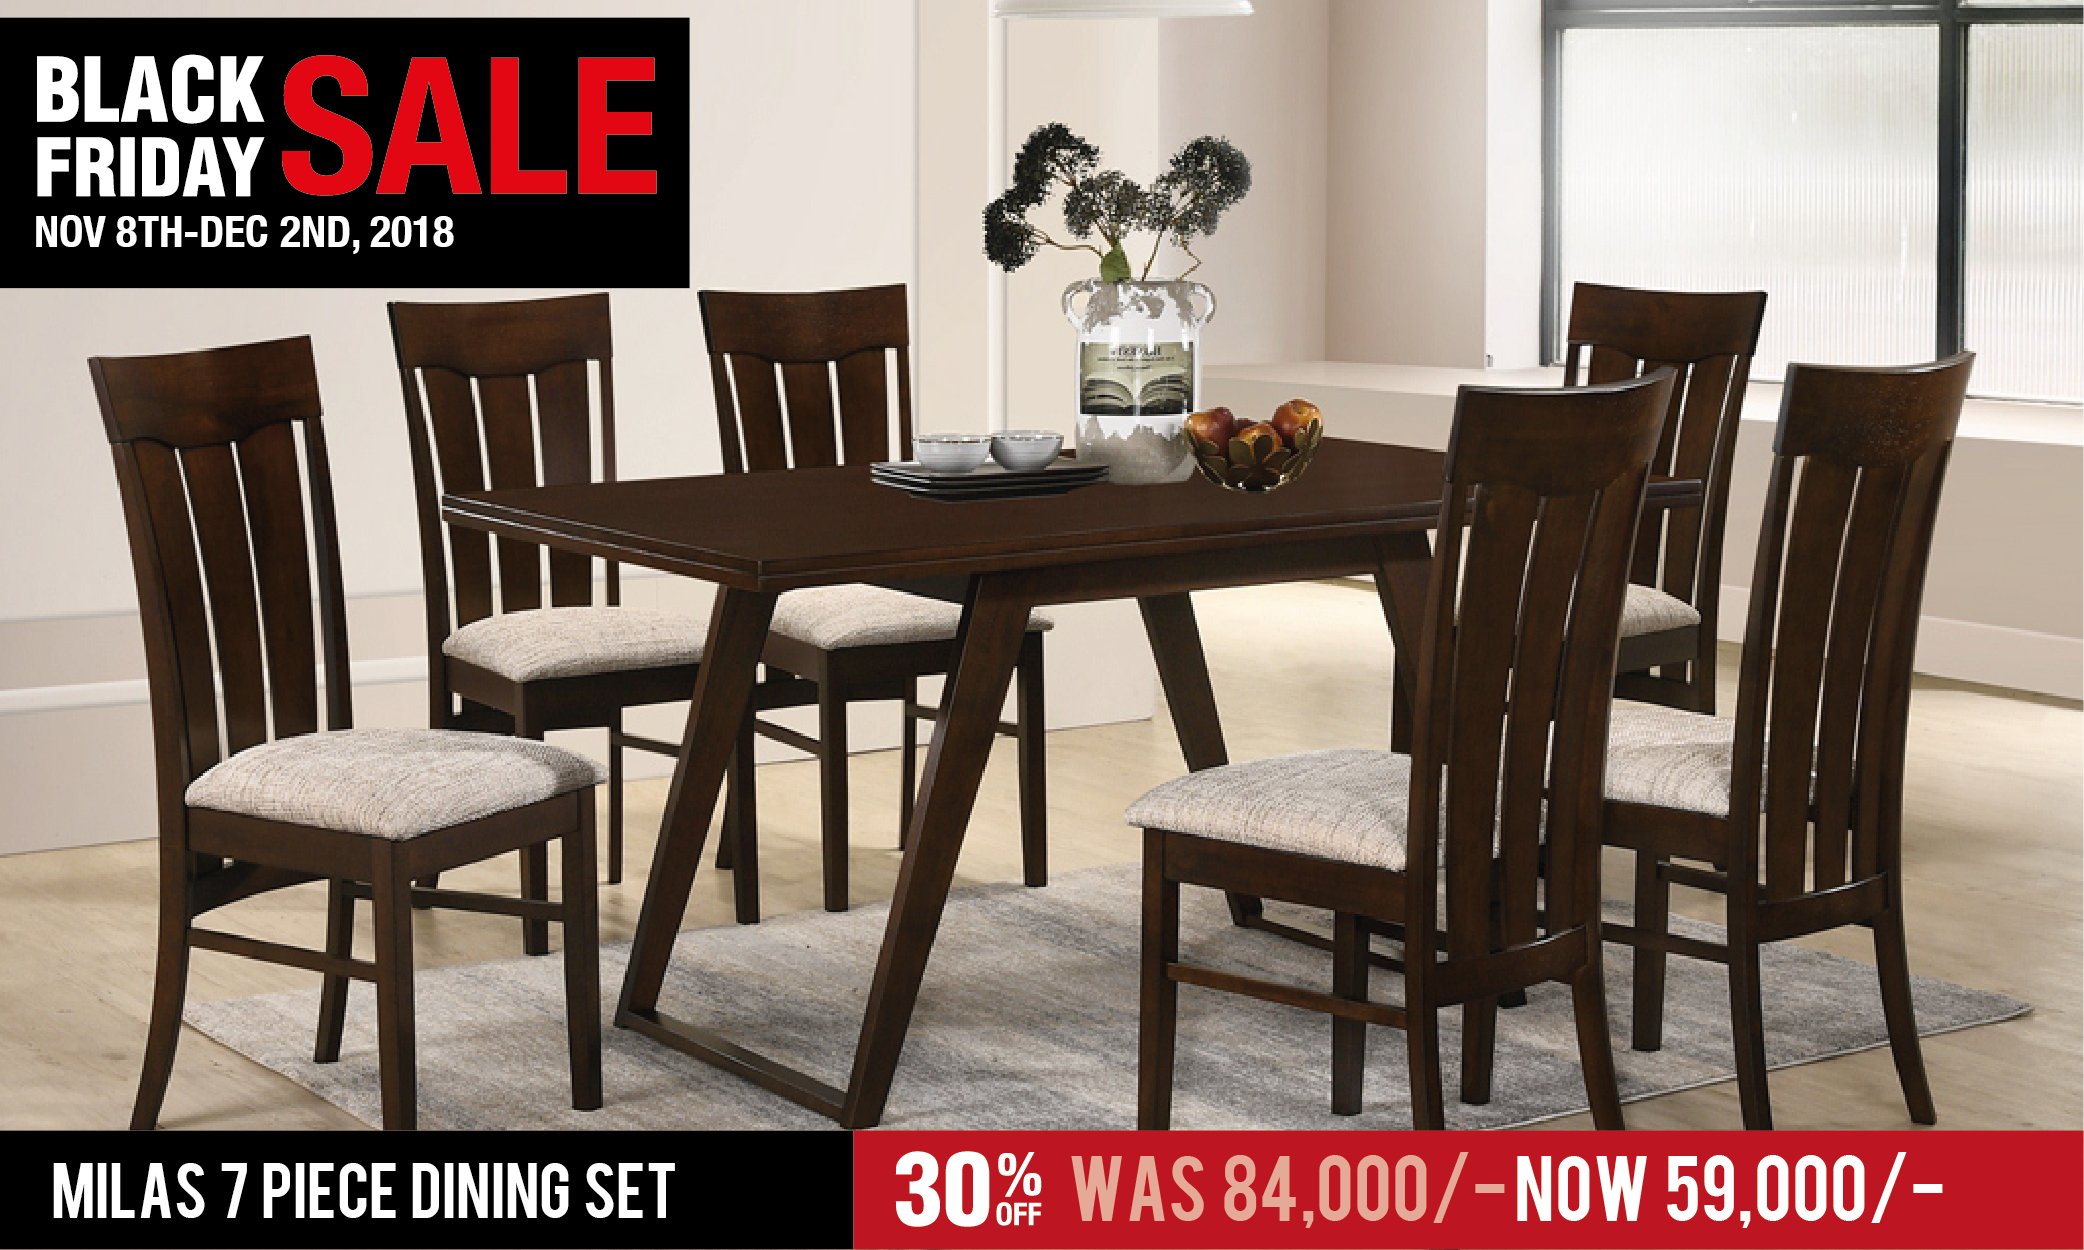 black-friday-facebook-banner-milas-dining-set-01.png